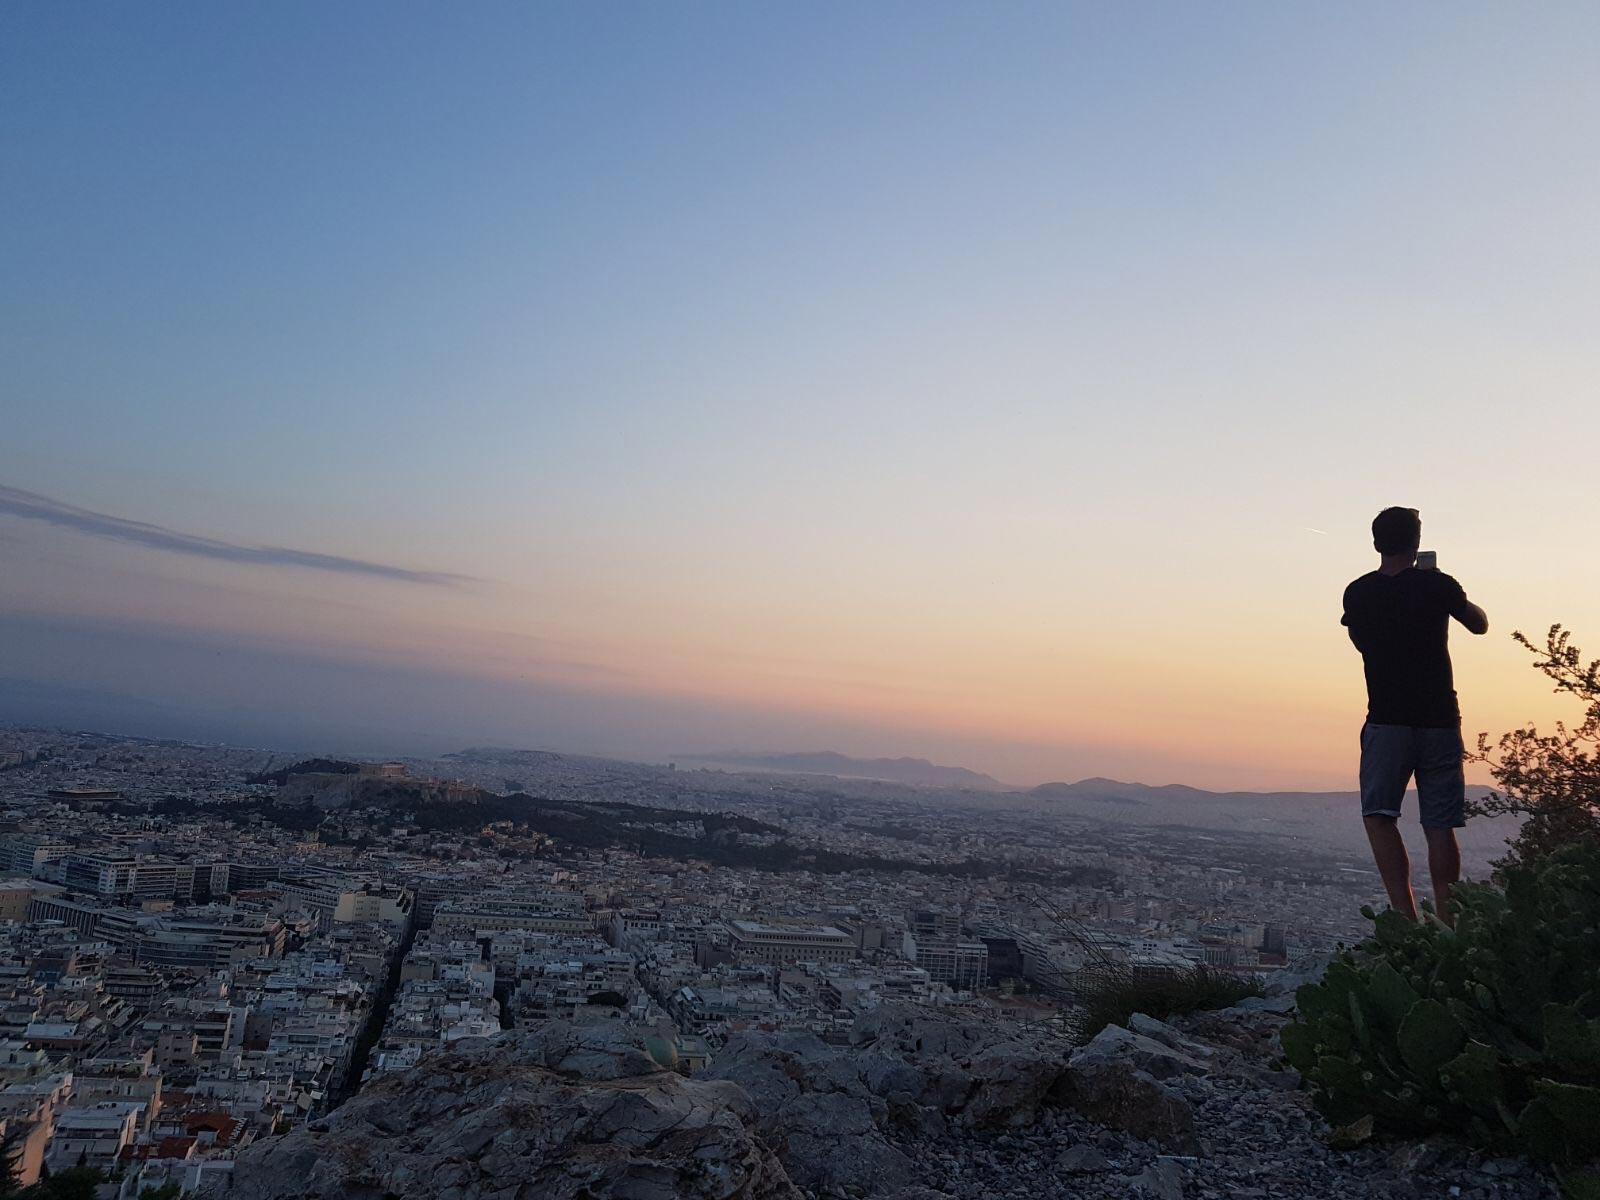 David Simpson on top of Mount Lycabettus at sunset in Athens, Greece. Athens has me